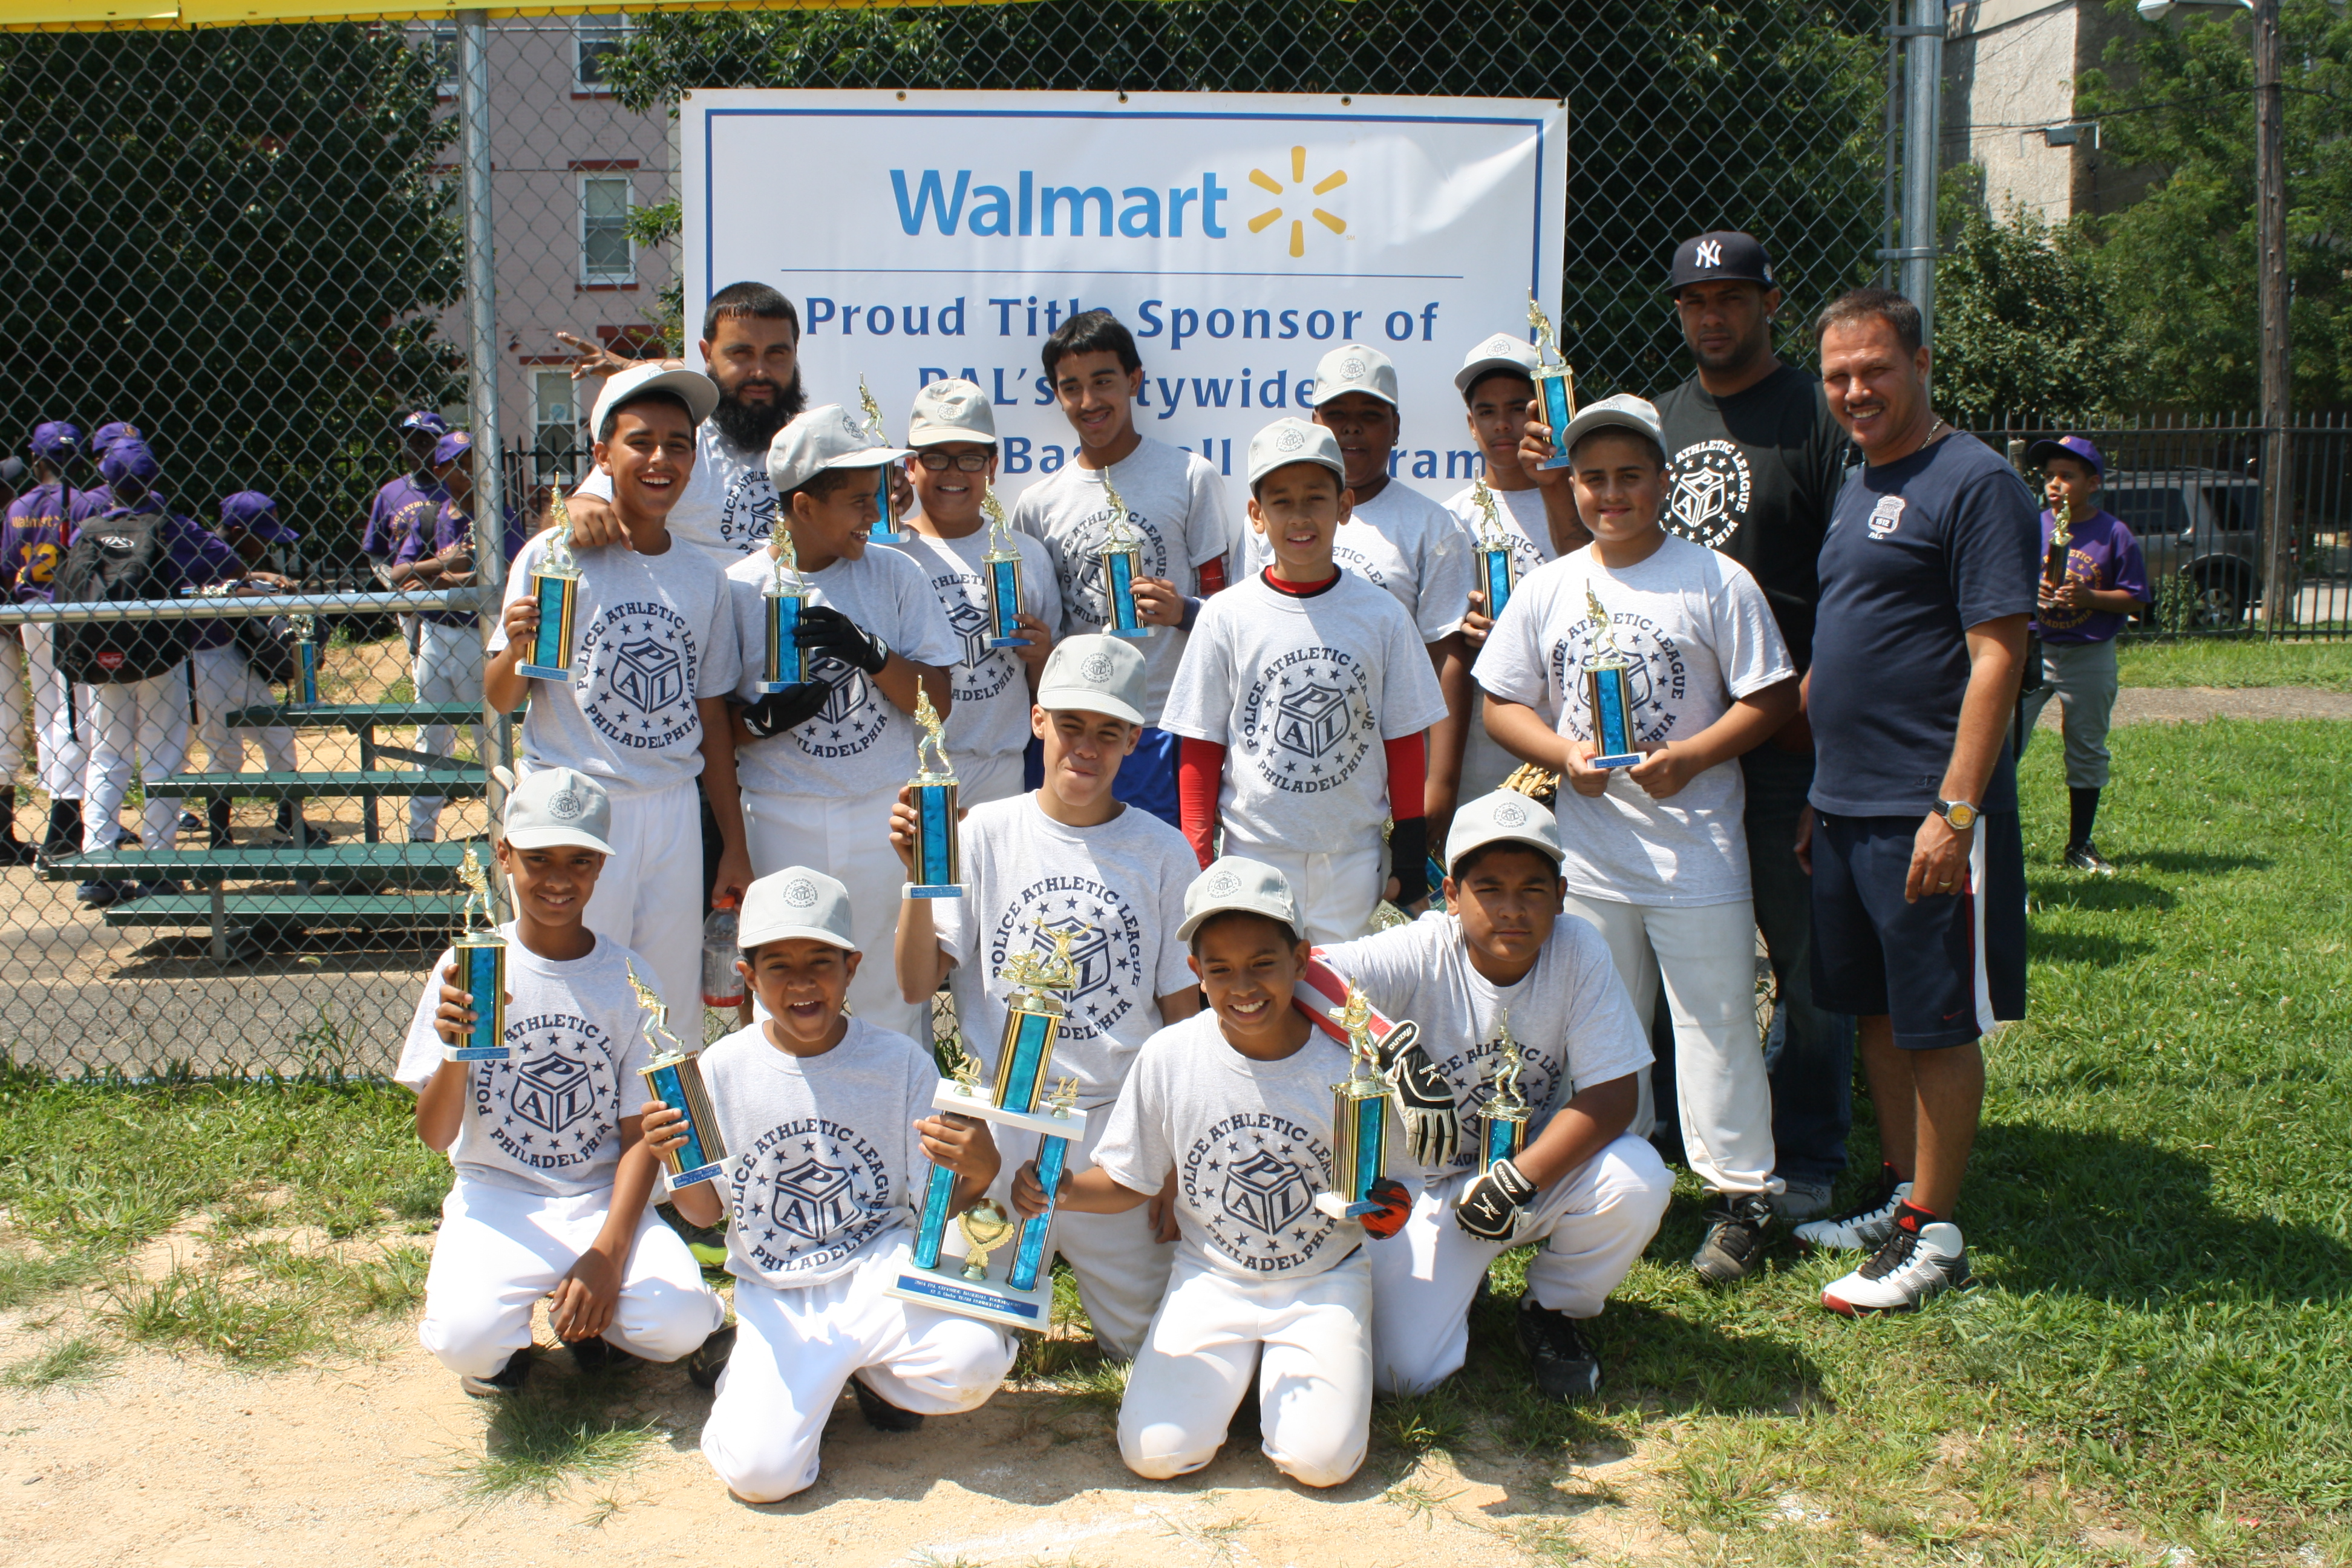 Harrowgate PAL took 2nd place in the 12-and-Under league